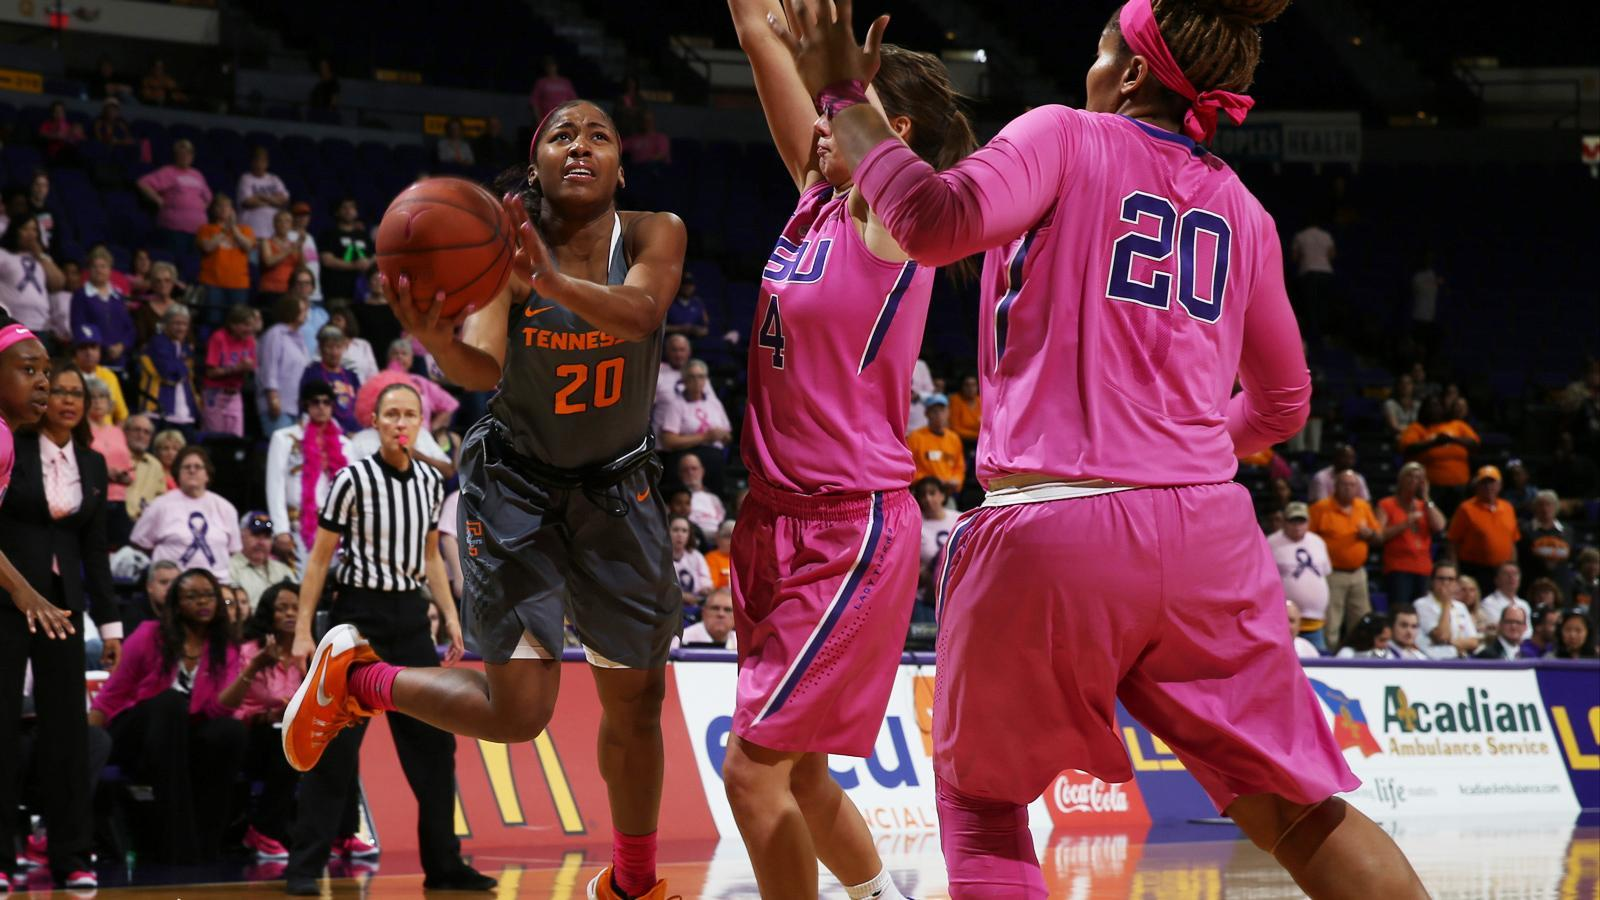 Tigers upset No. 24 Lady Vols 57-56